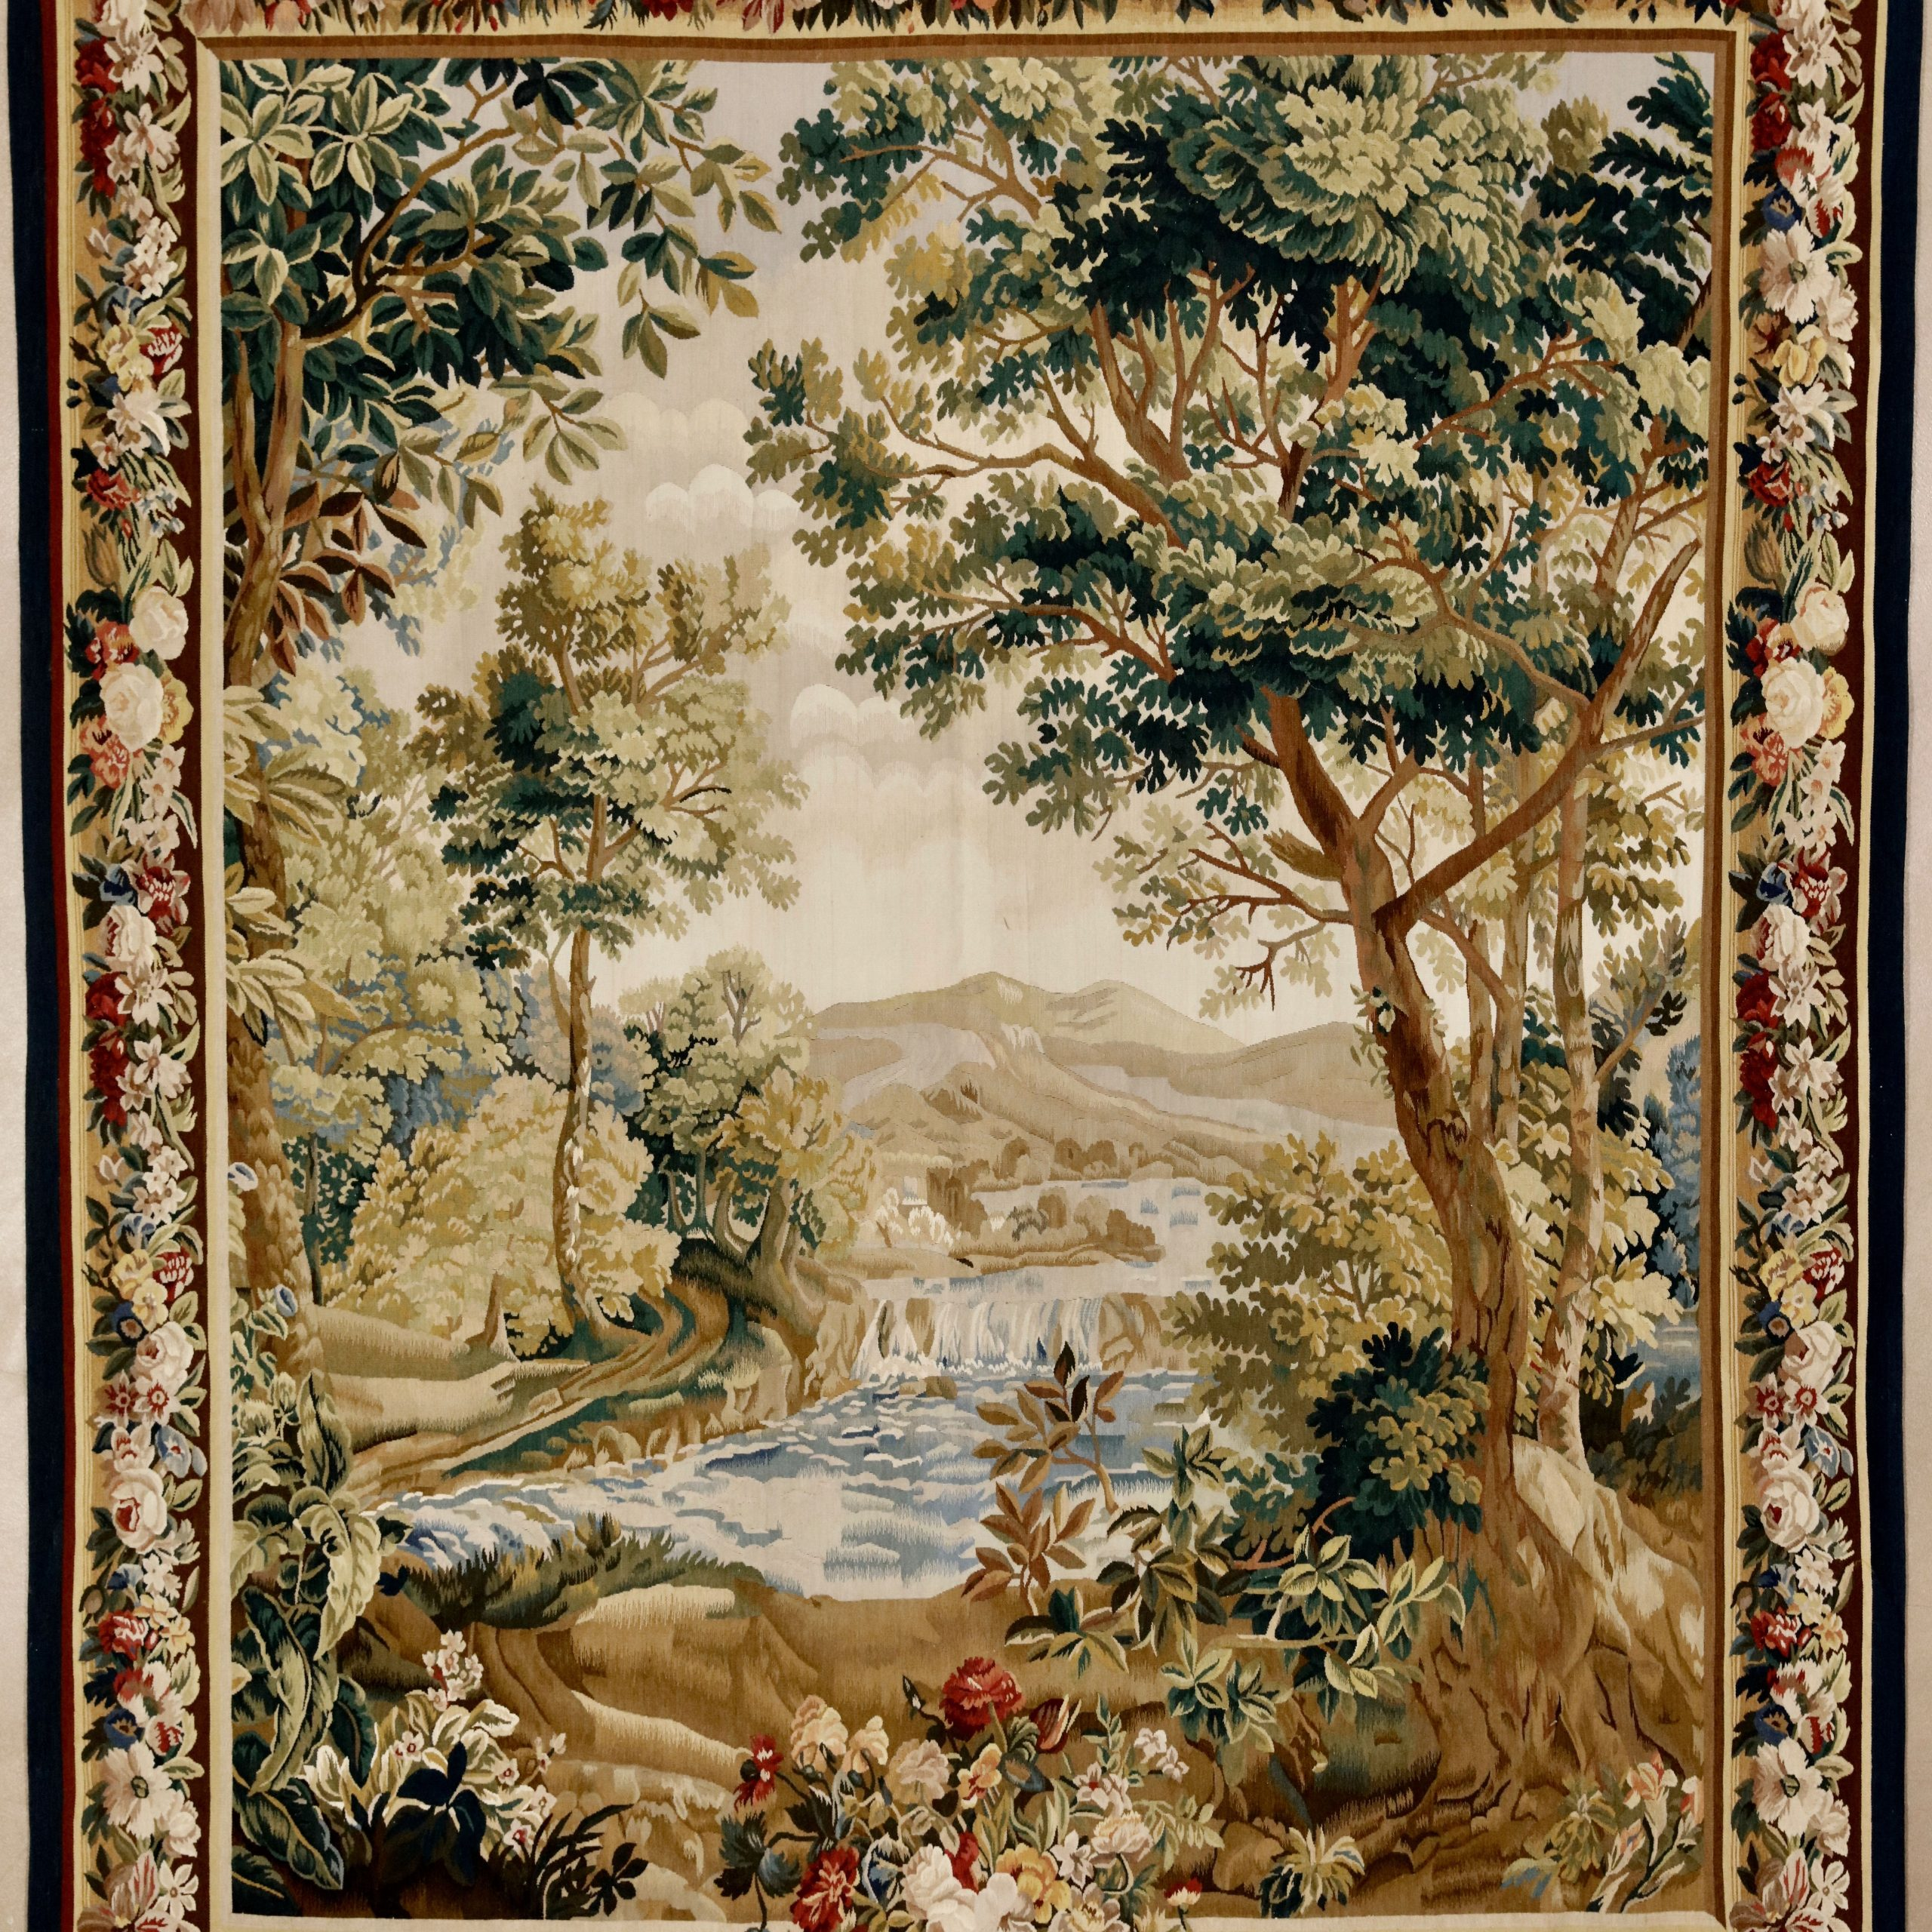 100+ Tapestry Ideas | Tapestry, Art, Medieval Tapestry Inside Most Popular Blended Fabric Verdure Au Chateau Ii European Tapestries (View 10 of 20)